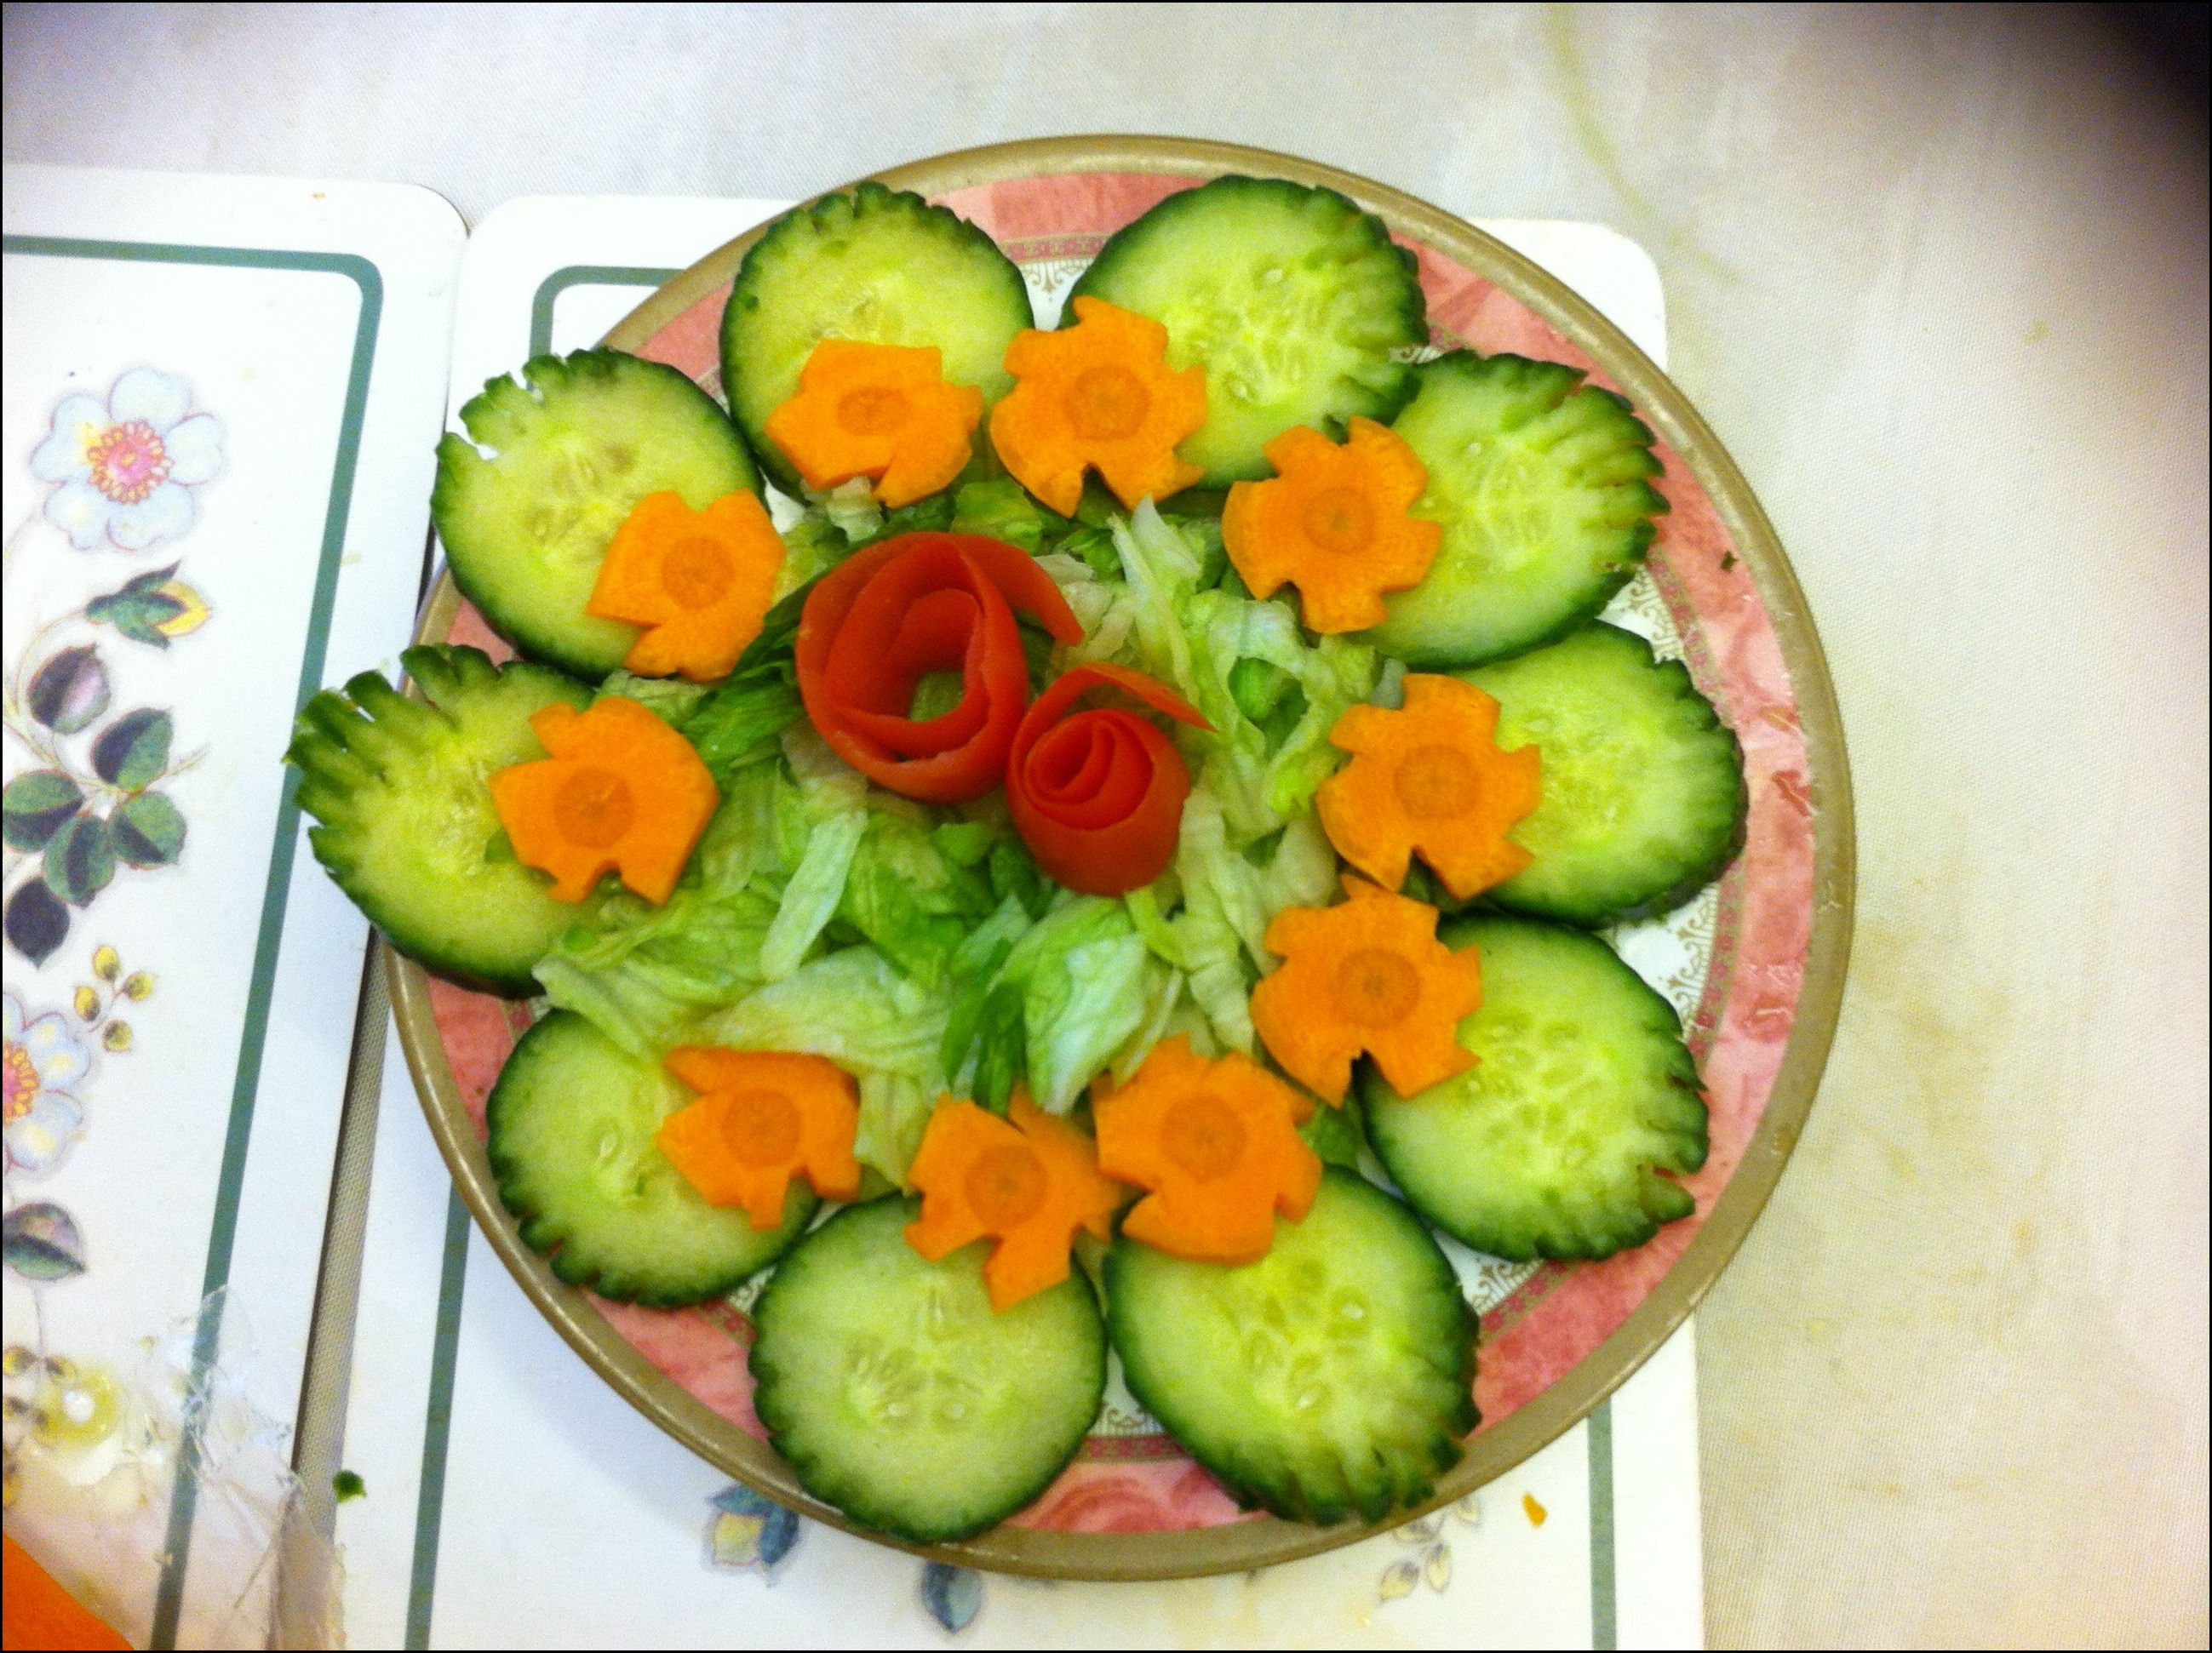 Elegant Vegetable Salad Decoration Concepts Style